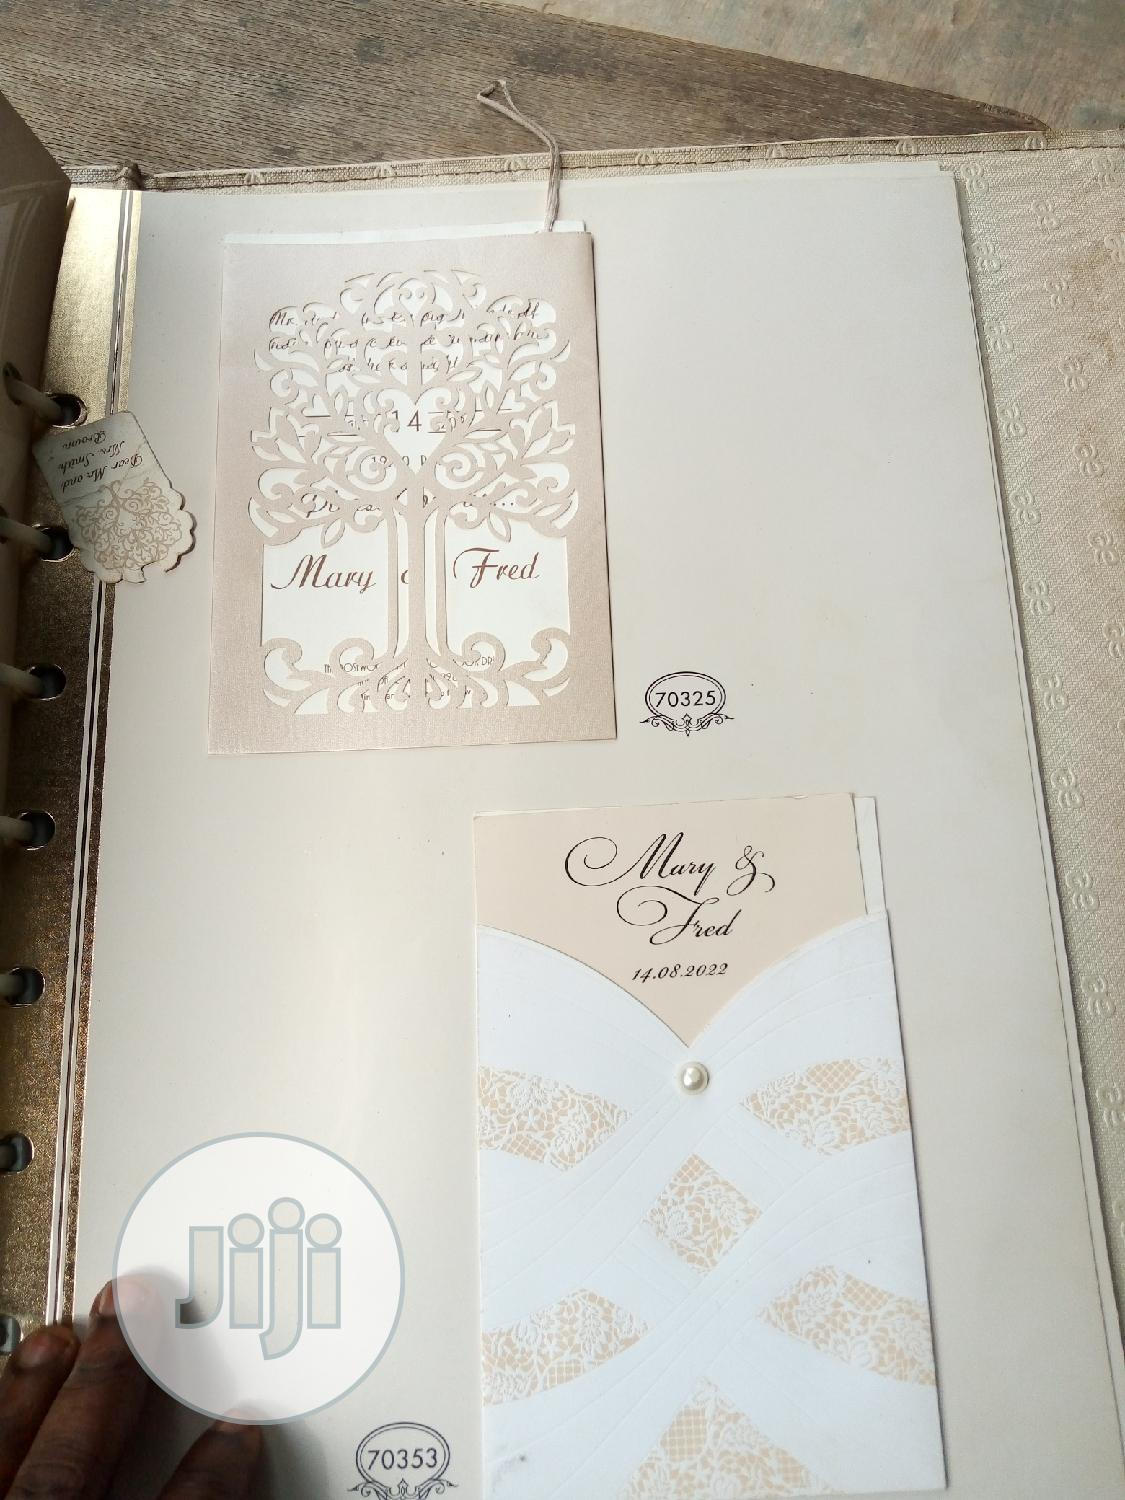 Wedding Invitation Cards | Arts & Crafts for sale in Gbagada, Lagos State, Nigeria